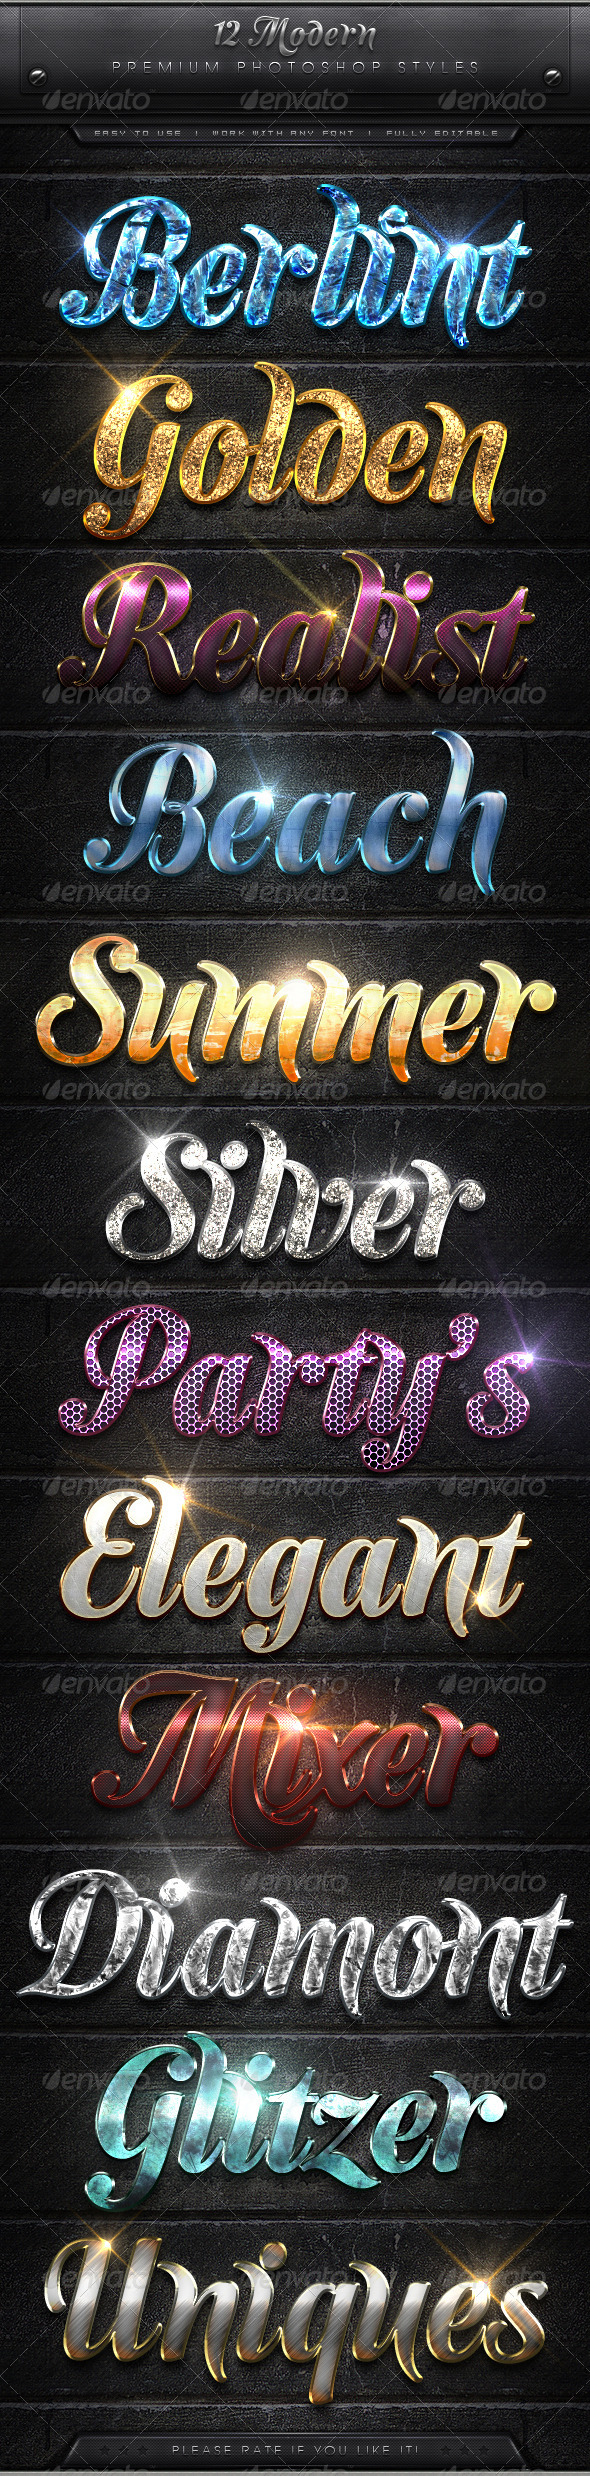 GraphicRiver 12 Modern Text Effect Styles 7974300